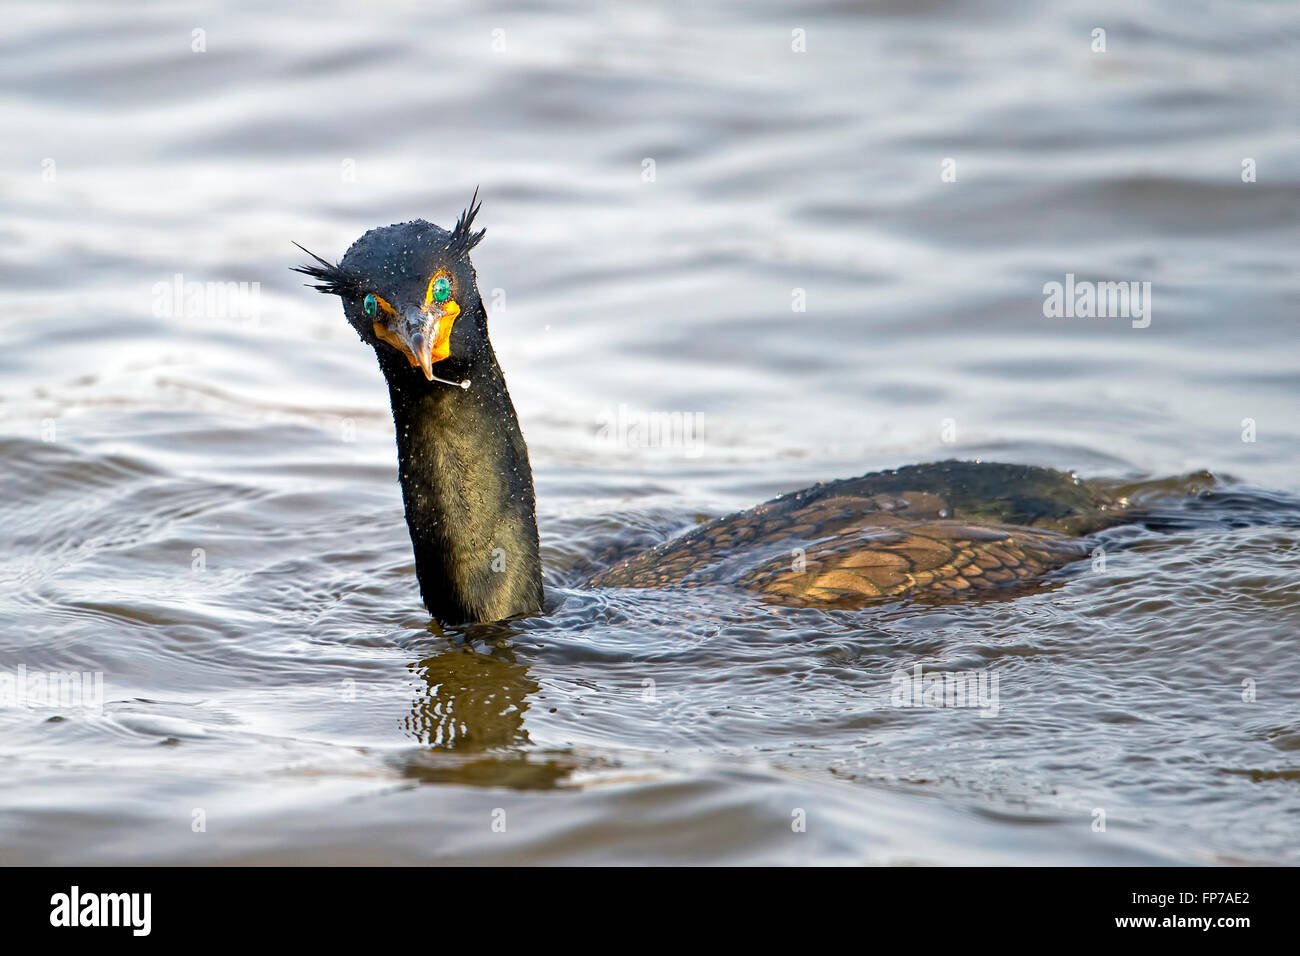 Double-crested Cormorant - Stock Image